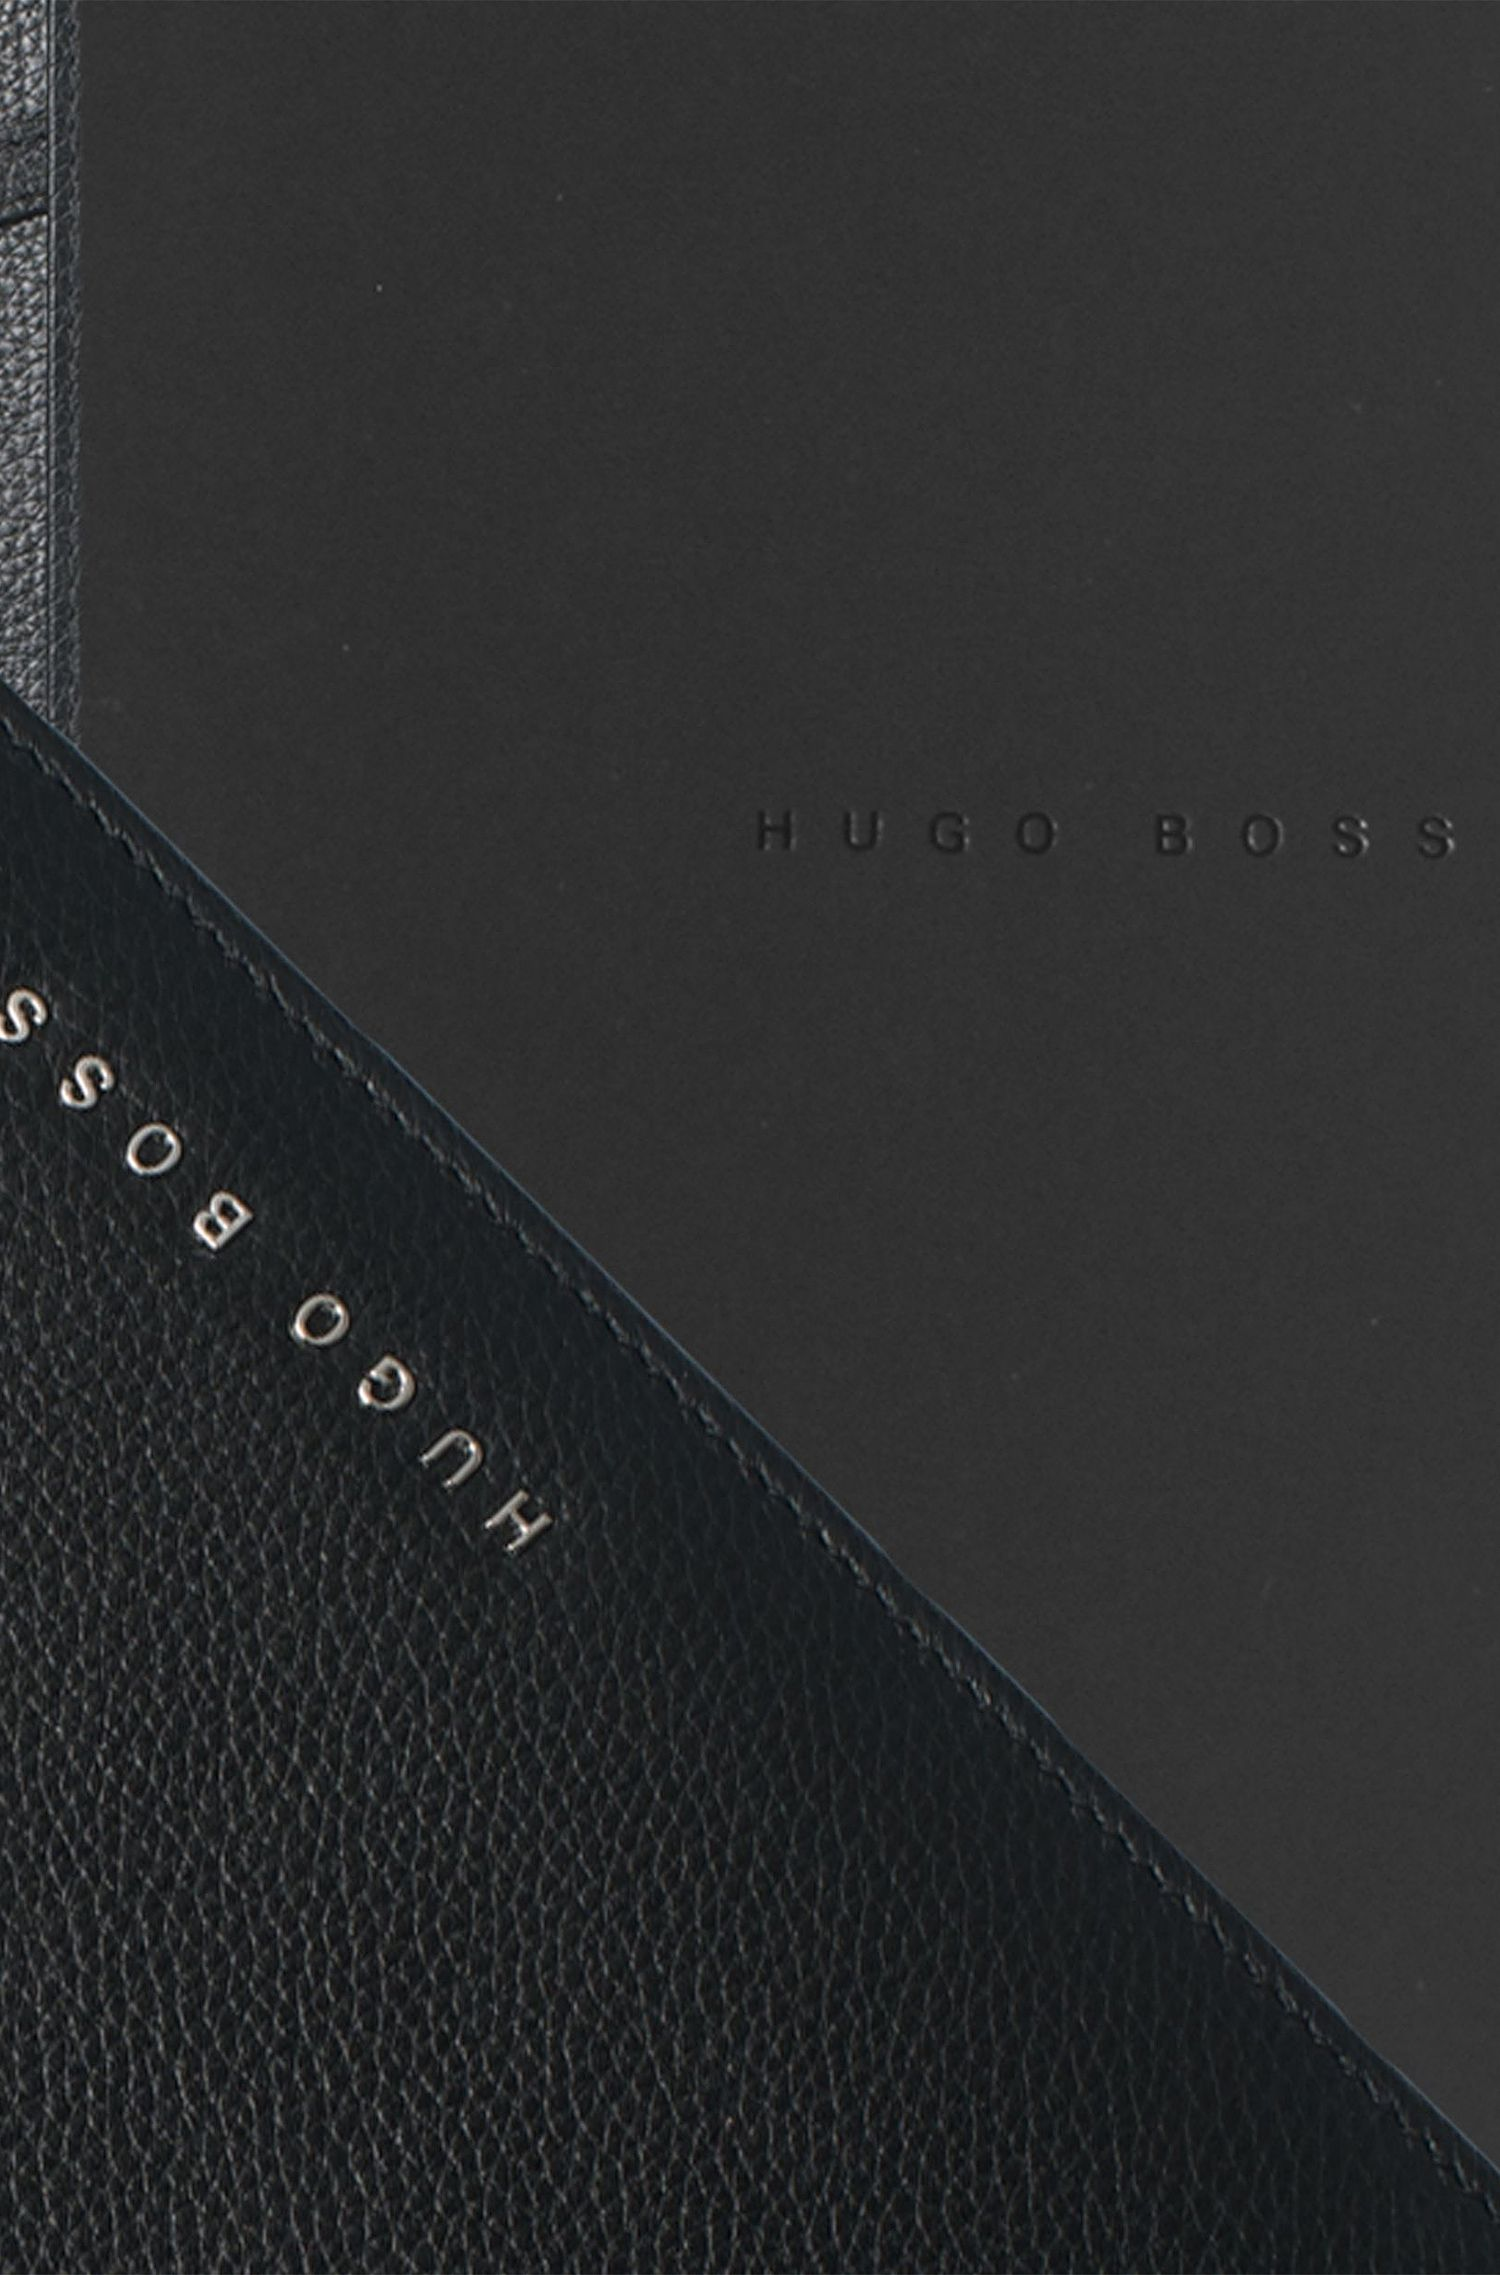 Textured black leather A5 folder with notepad